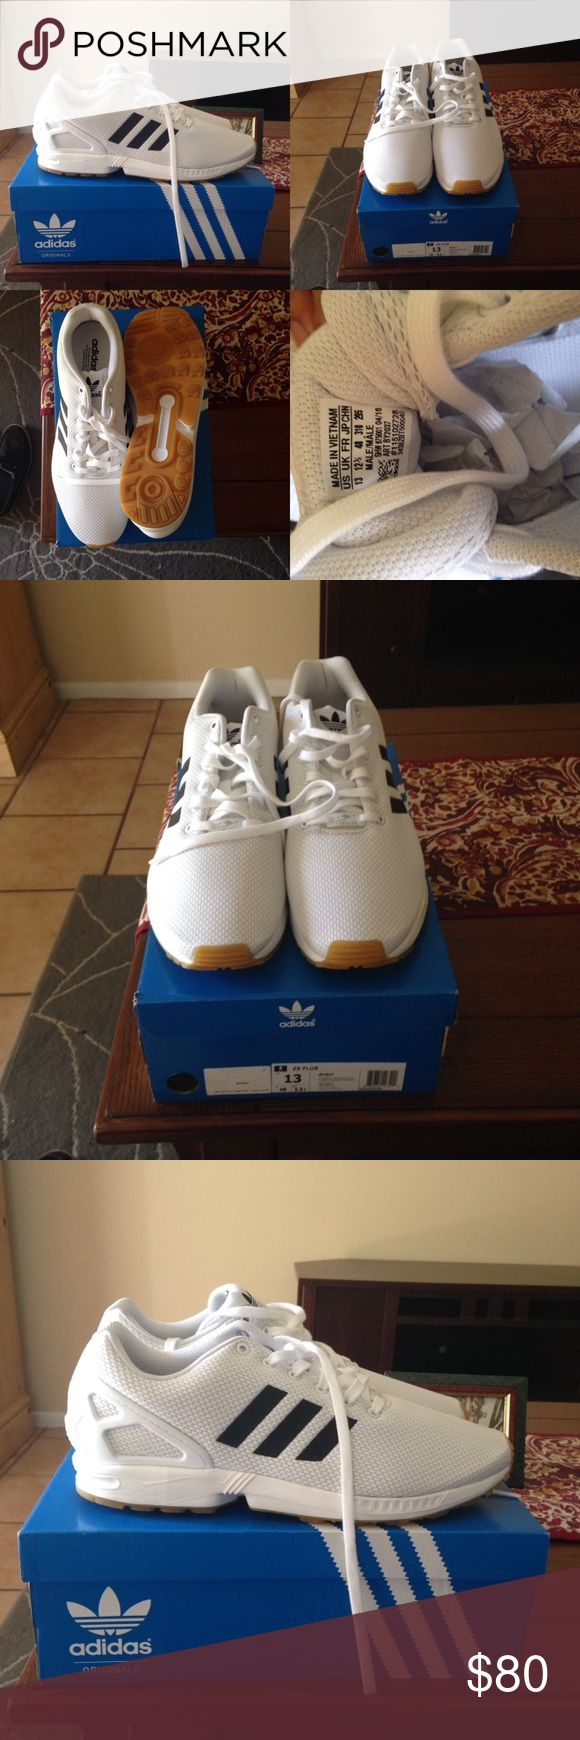 Adidas ZX FLUX Size 13 mens originals BRAND NEW BRAND NEW adidas ZX FLUX i work at adidas so i get a shoe discount , turns out the shoe is too small which is why iam selling it. 10/10 condition still in box . Adidas Shoes Sneakers